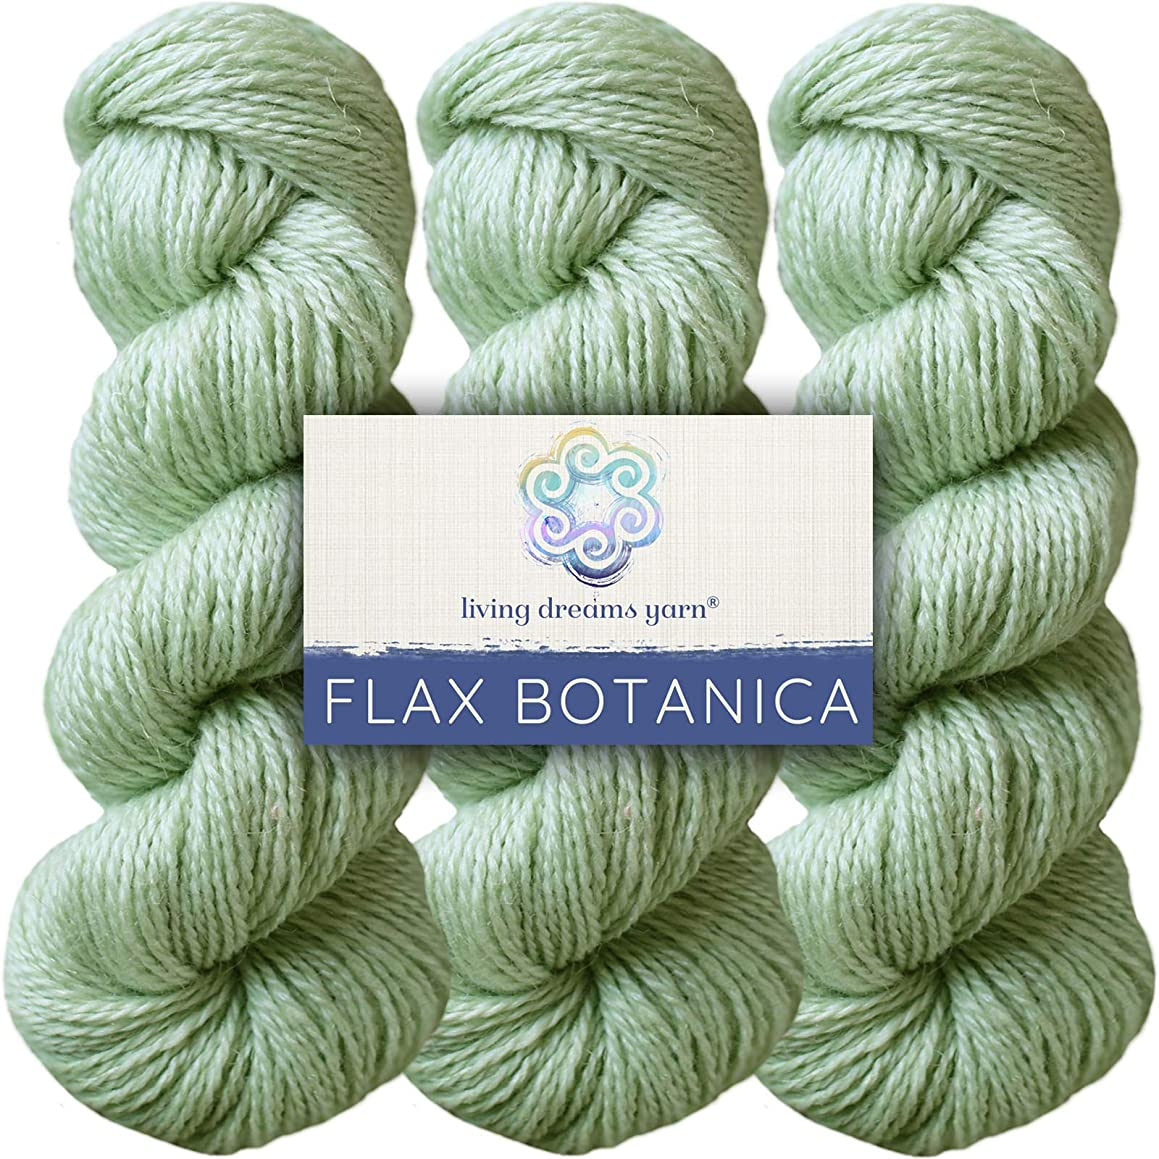 Living Dreams Flax Botanica DK Yarn. Elegant Merino Linen Silk. Cruelty Free & Responsibly Sourced. Pacific Northwest Handmade. Bulk Discount Pack, Pistachio